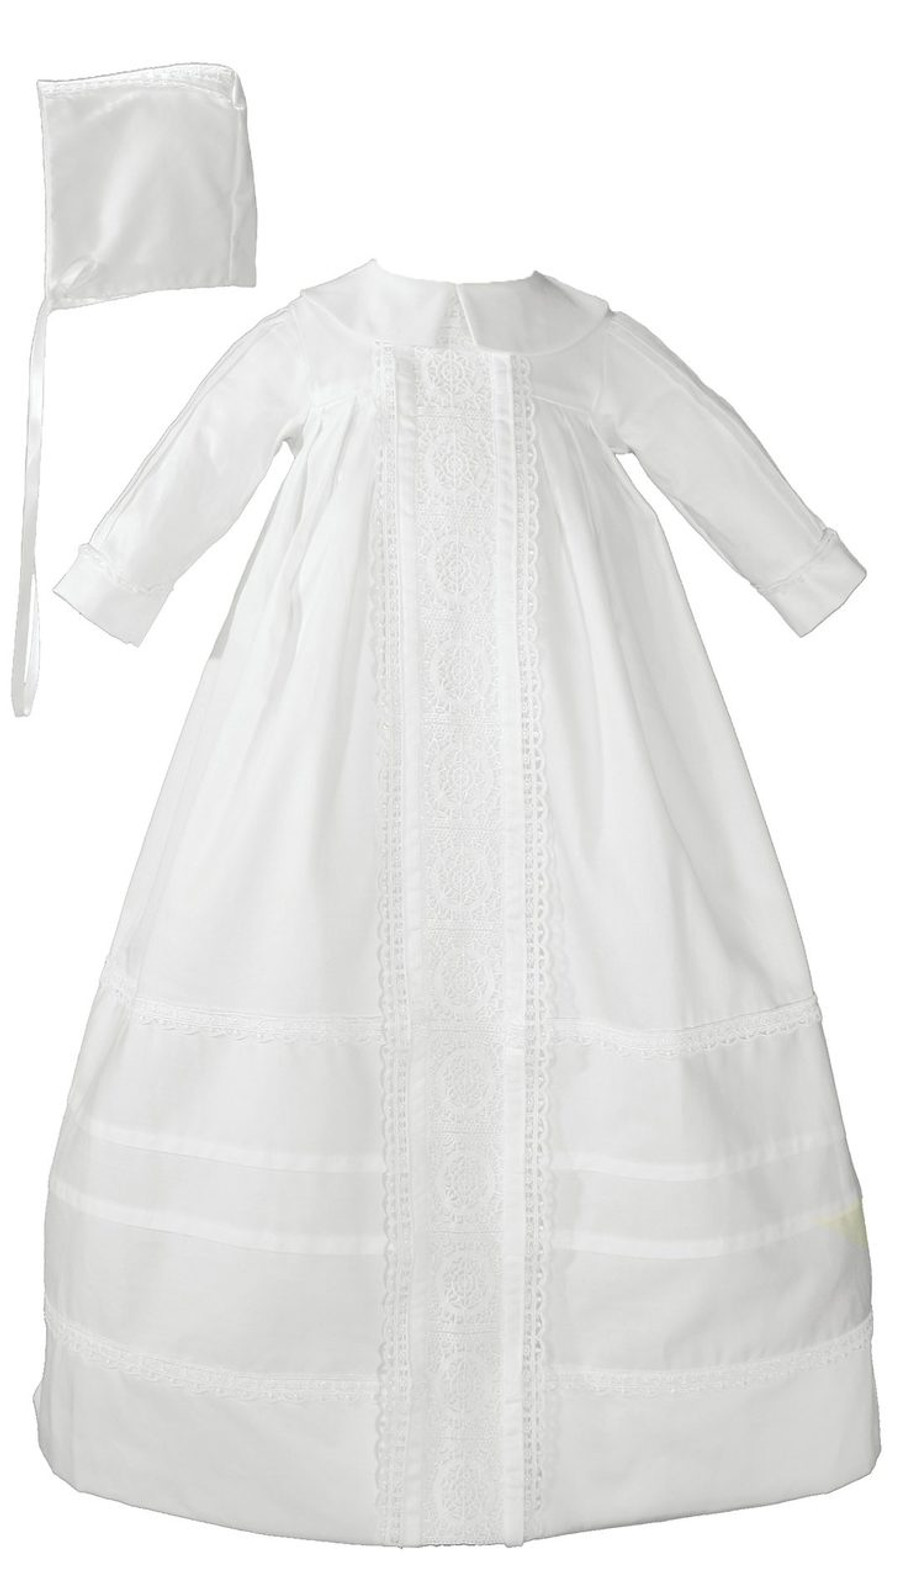 Cotton Sateen Bishop's Christening Baptism Gown and Bonnet